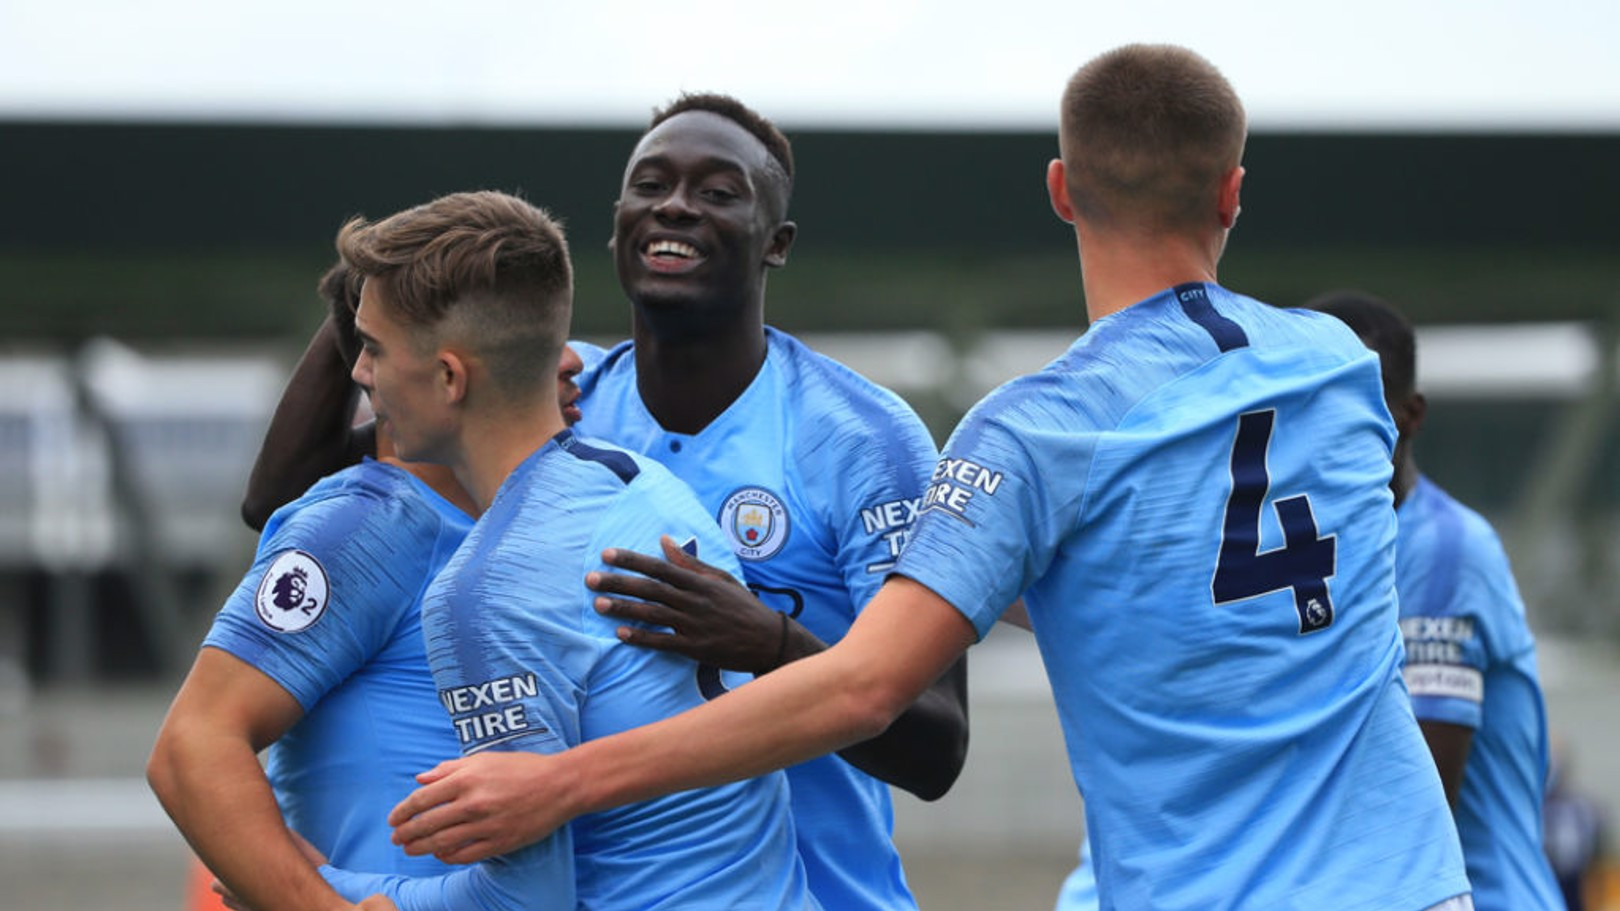 ALL SMILES: The City players celebrate during the Premier League 2 victory over Derby